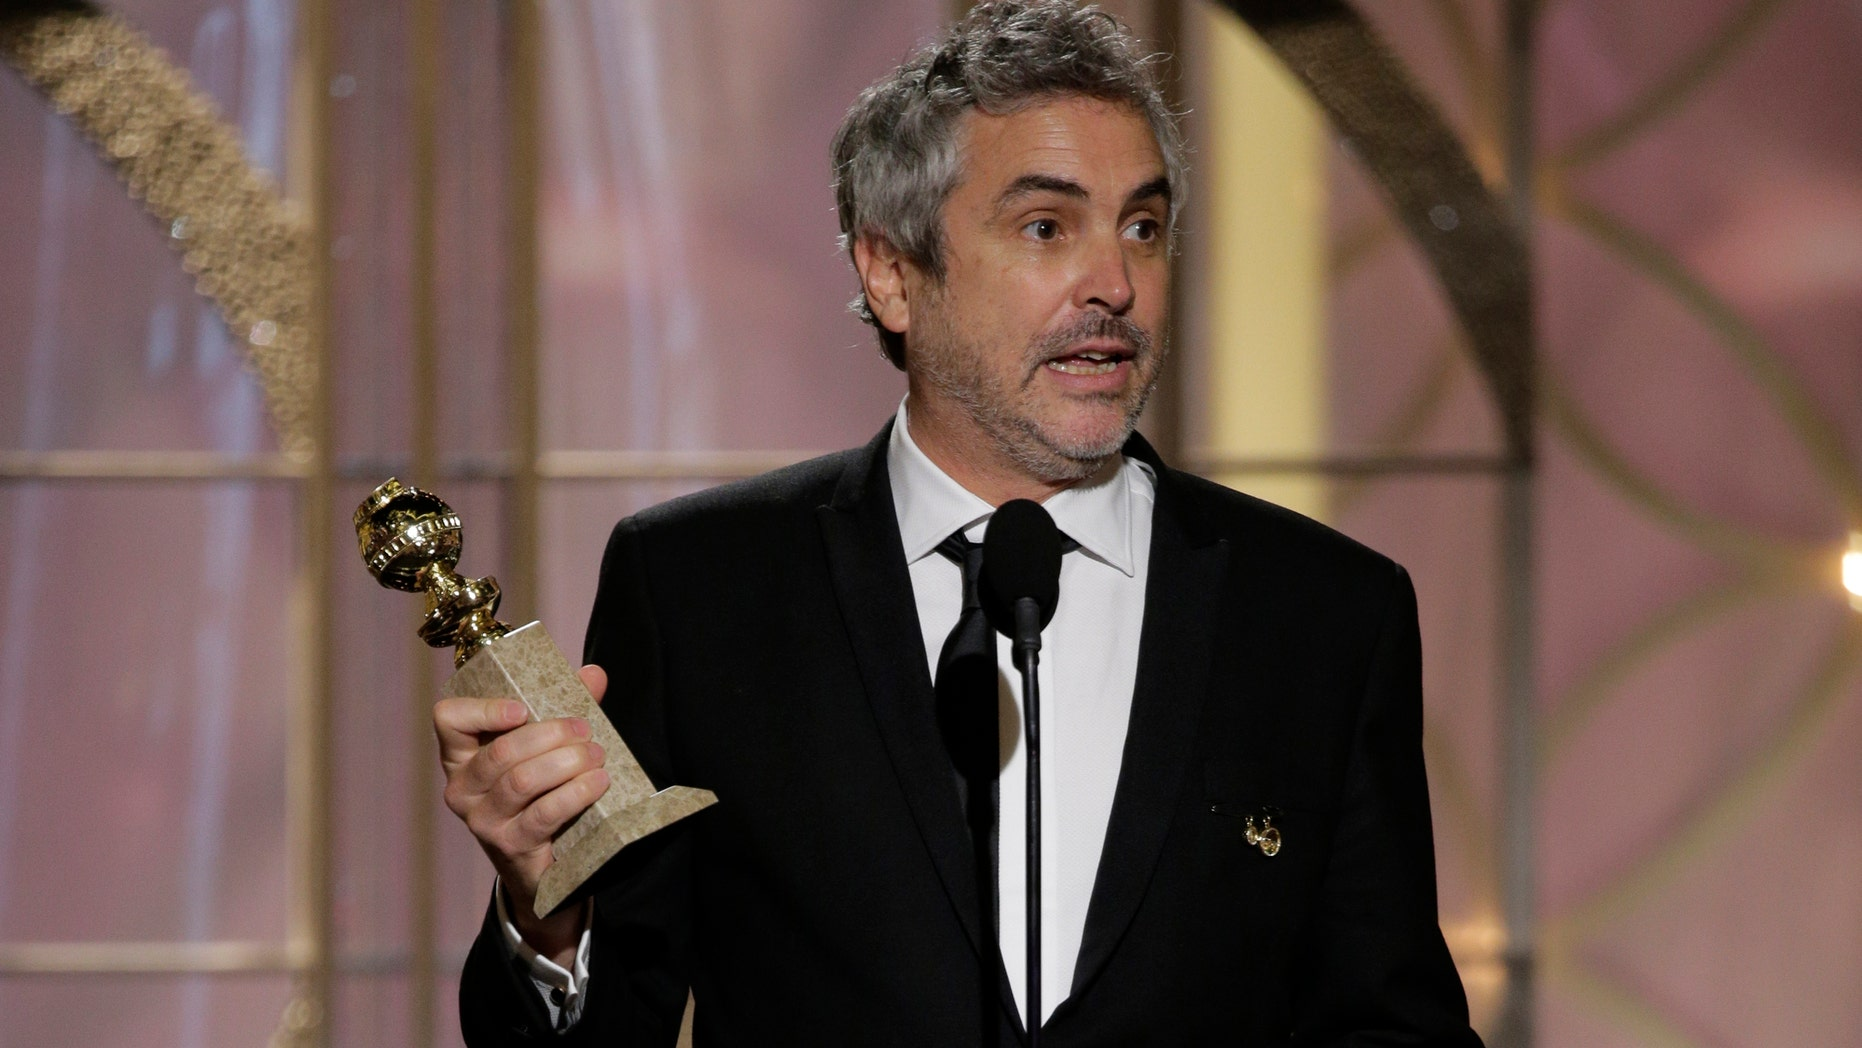 """BEVERLY HILLS, CA - JANUARY 12:  In this handout photo provided by NBCUniversal, Alfonso Cuaron accepts the award for Best Director - Motion Picture for """"Gravity"""" during the 71st Annual Golden Globe Award at The Beverly Hilton Hotel on January 12, 2014 in Beverly Hills, California.  (Photo by Paul Drinkwater/NBCUniversal via Getty Images)"""